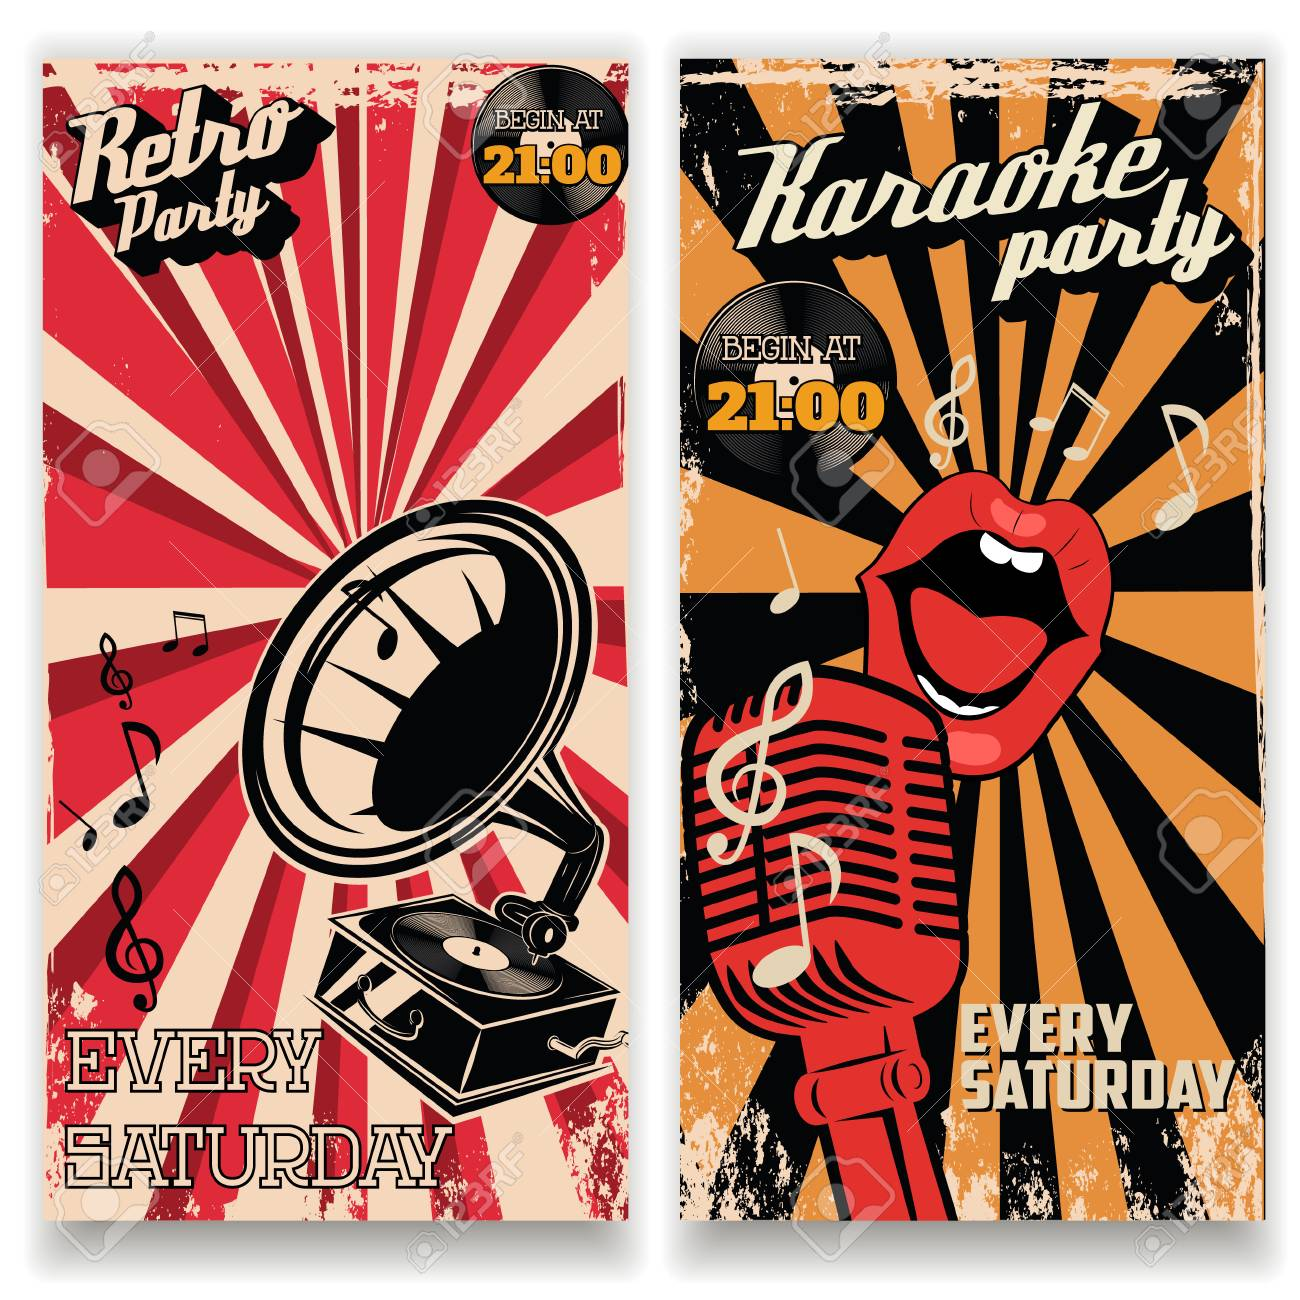 karaoke vintage party poster and retro party flyers templates